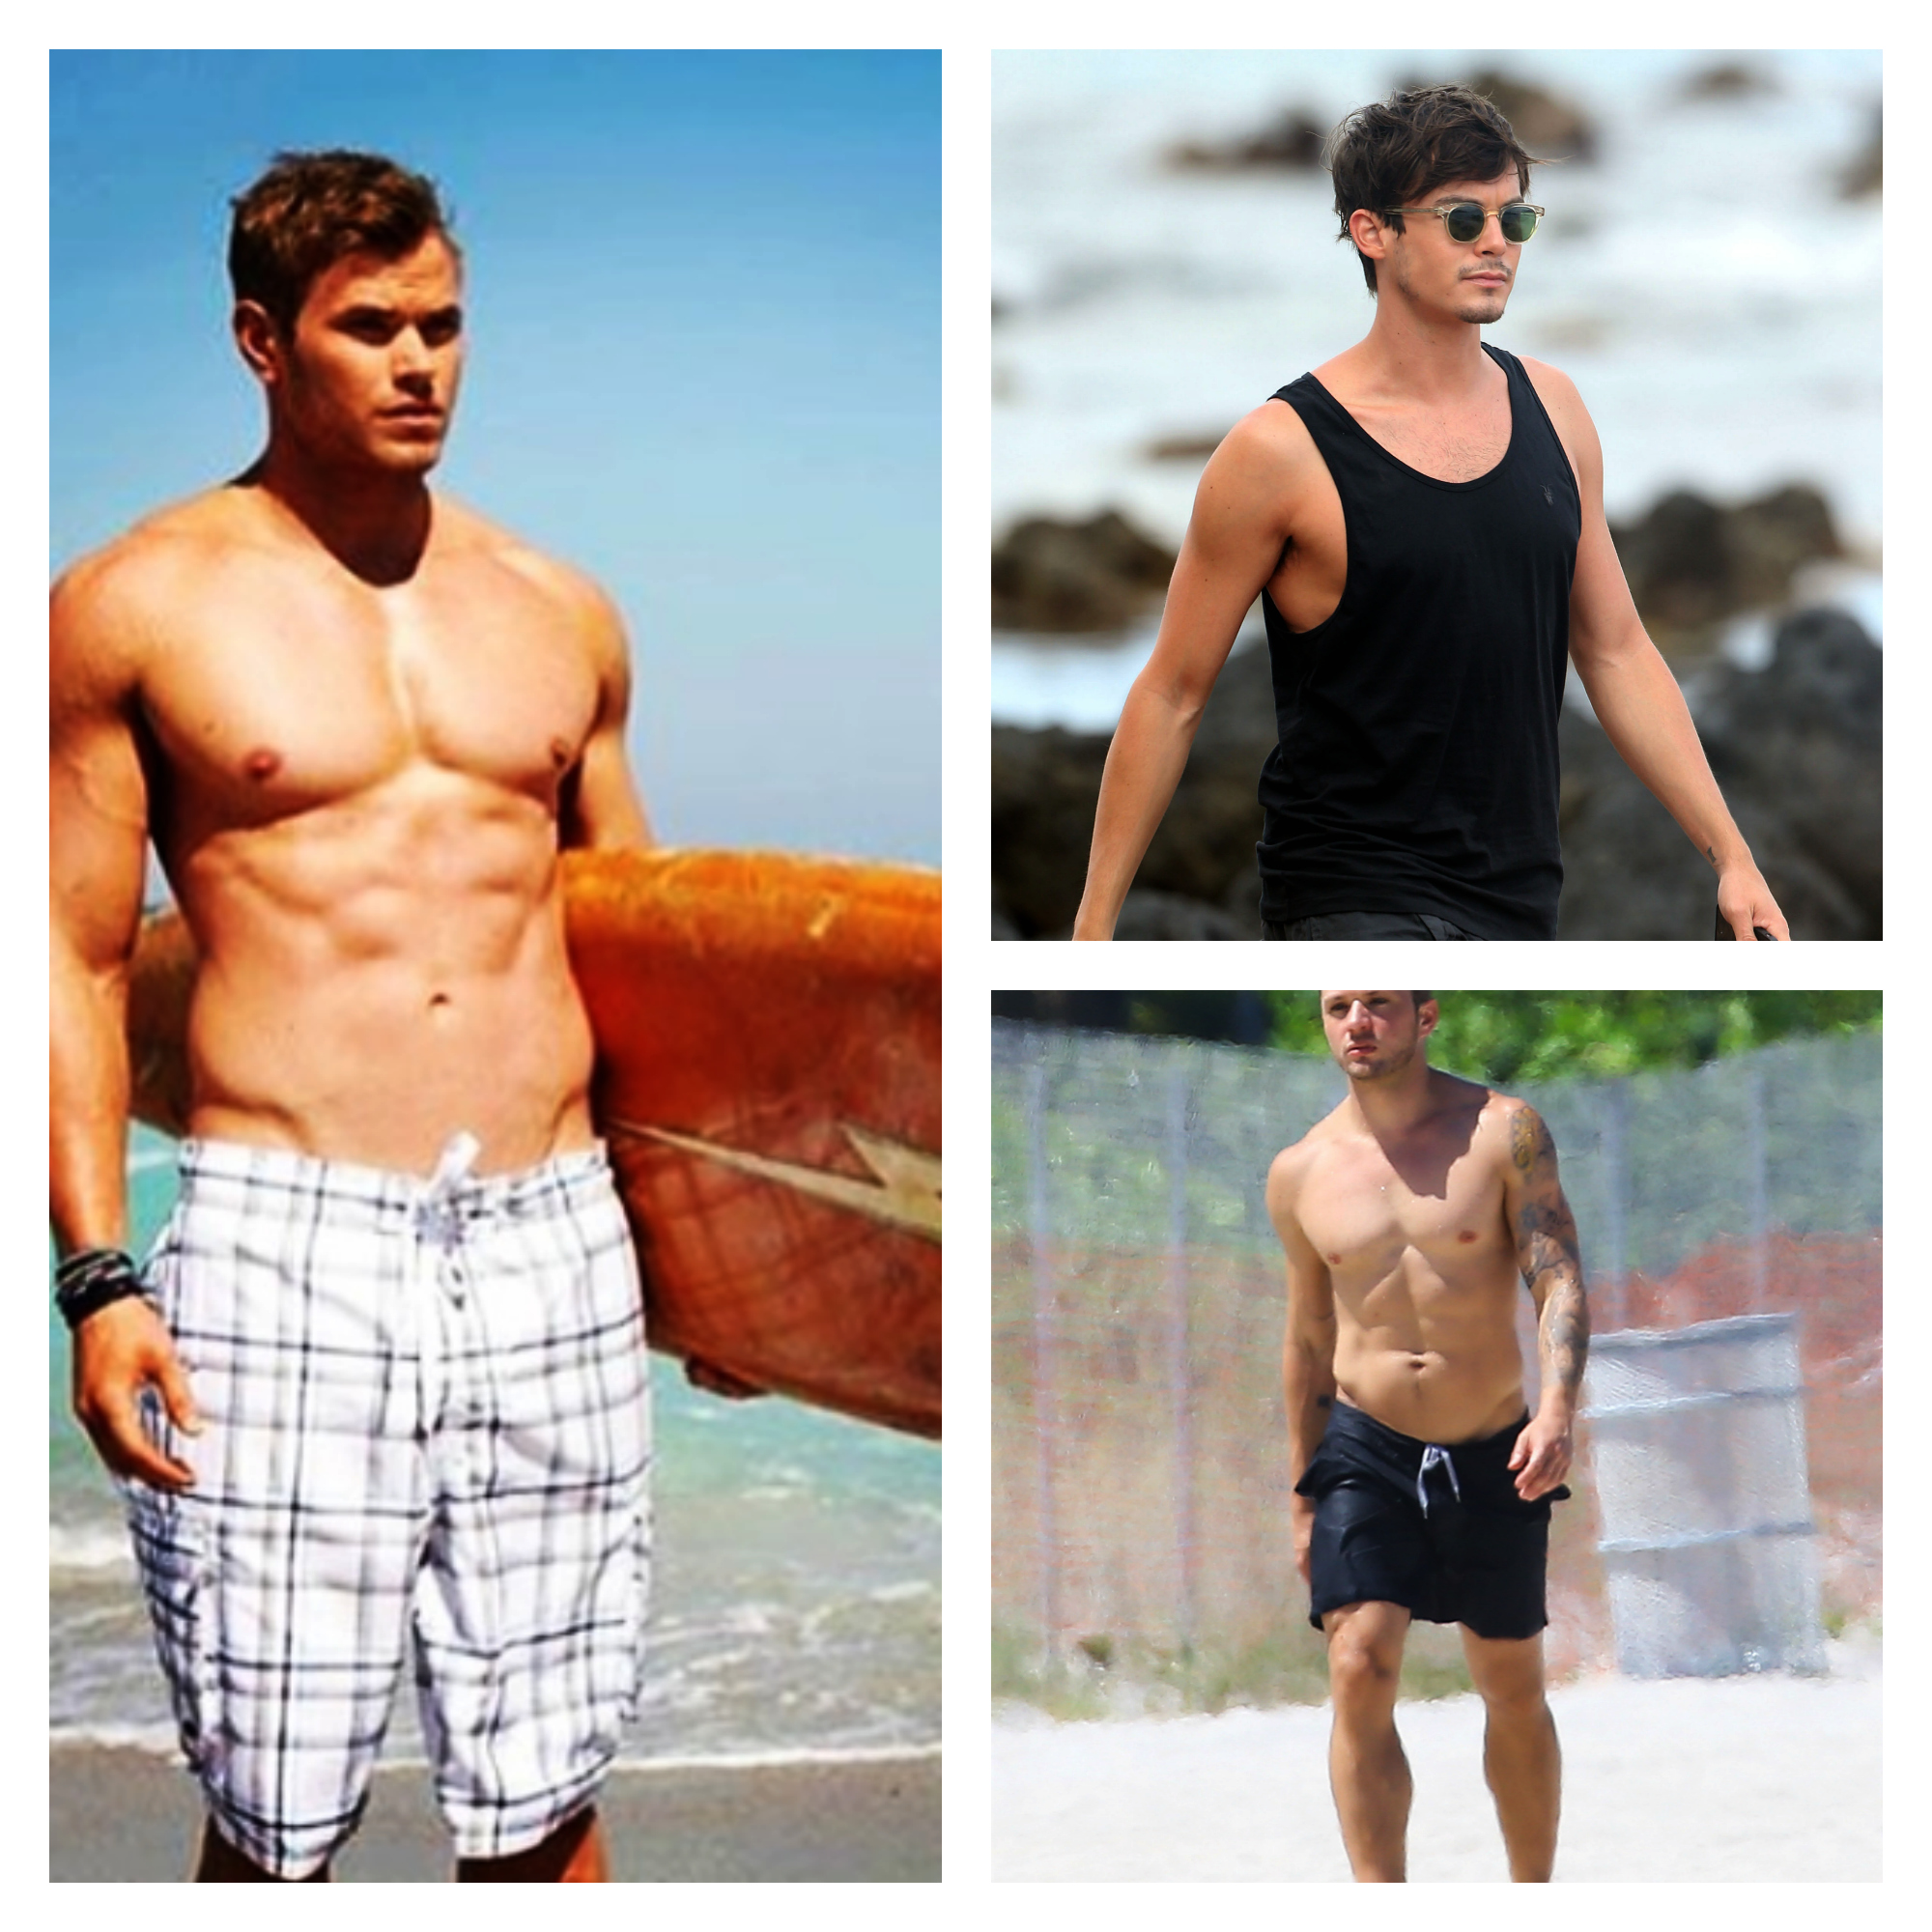 Sexy celebrity guys on the beach